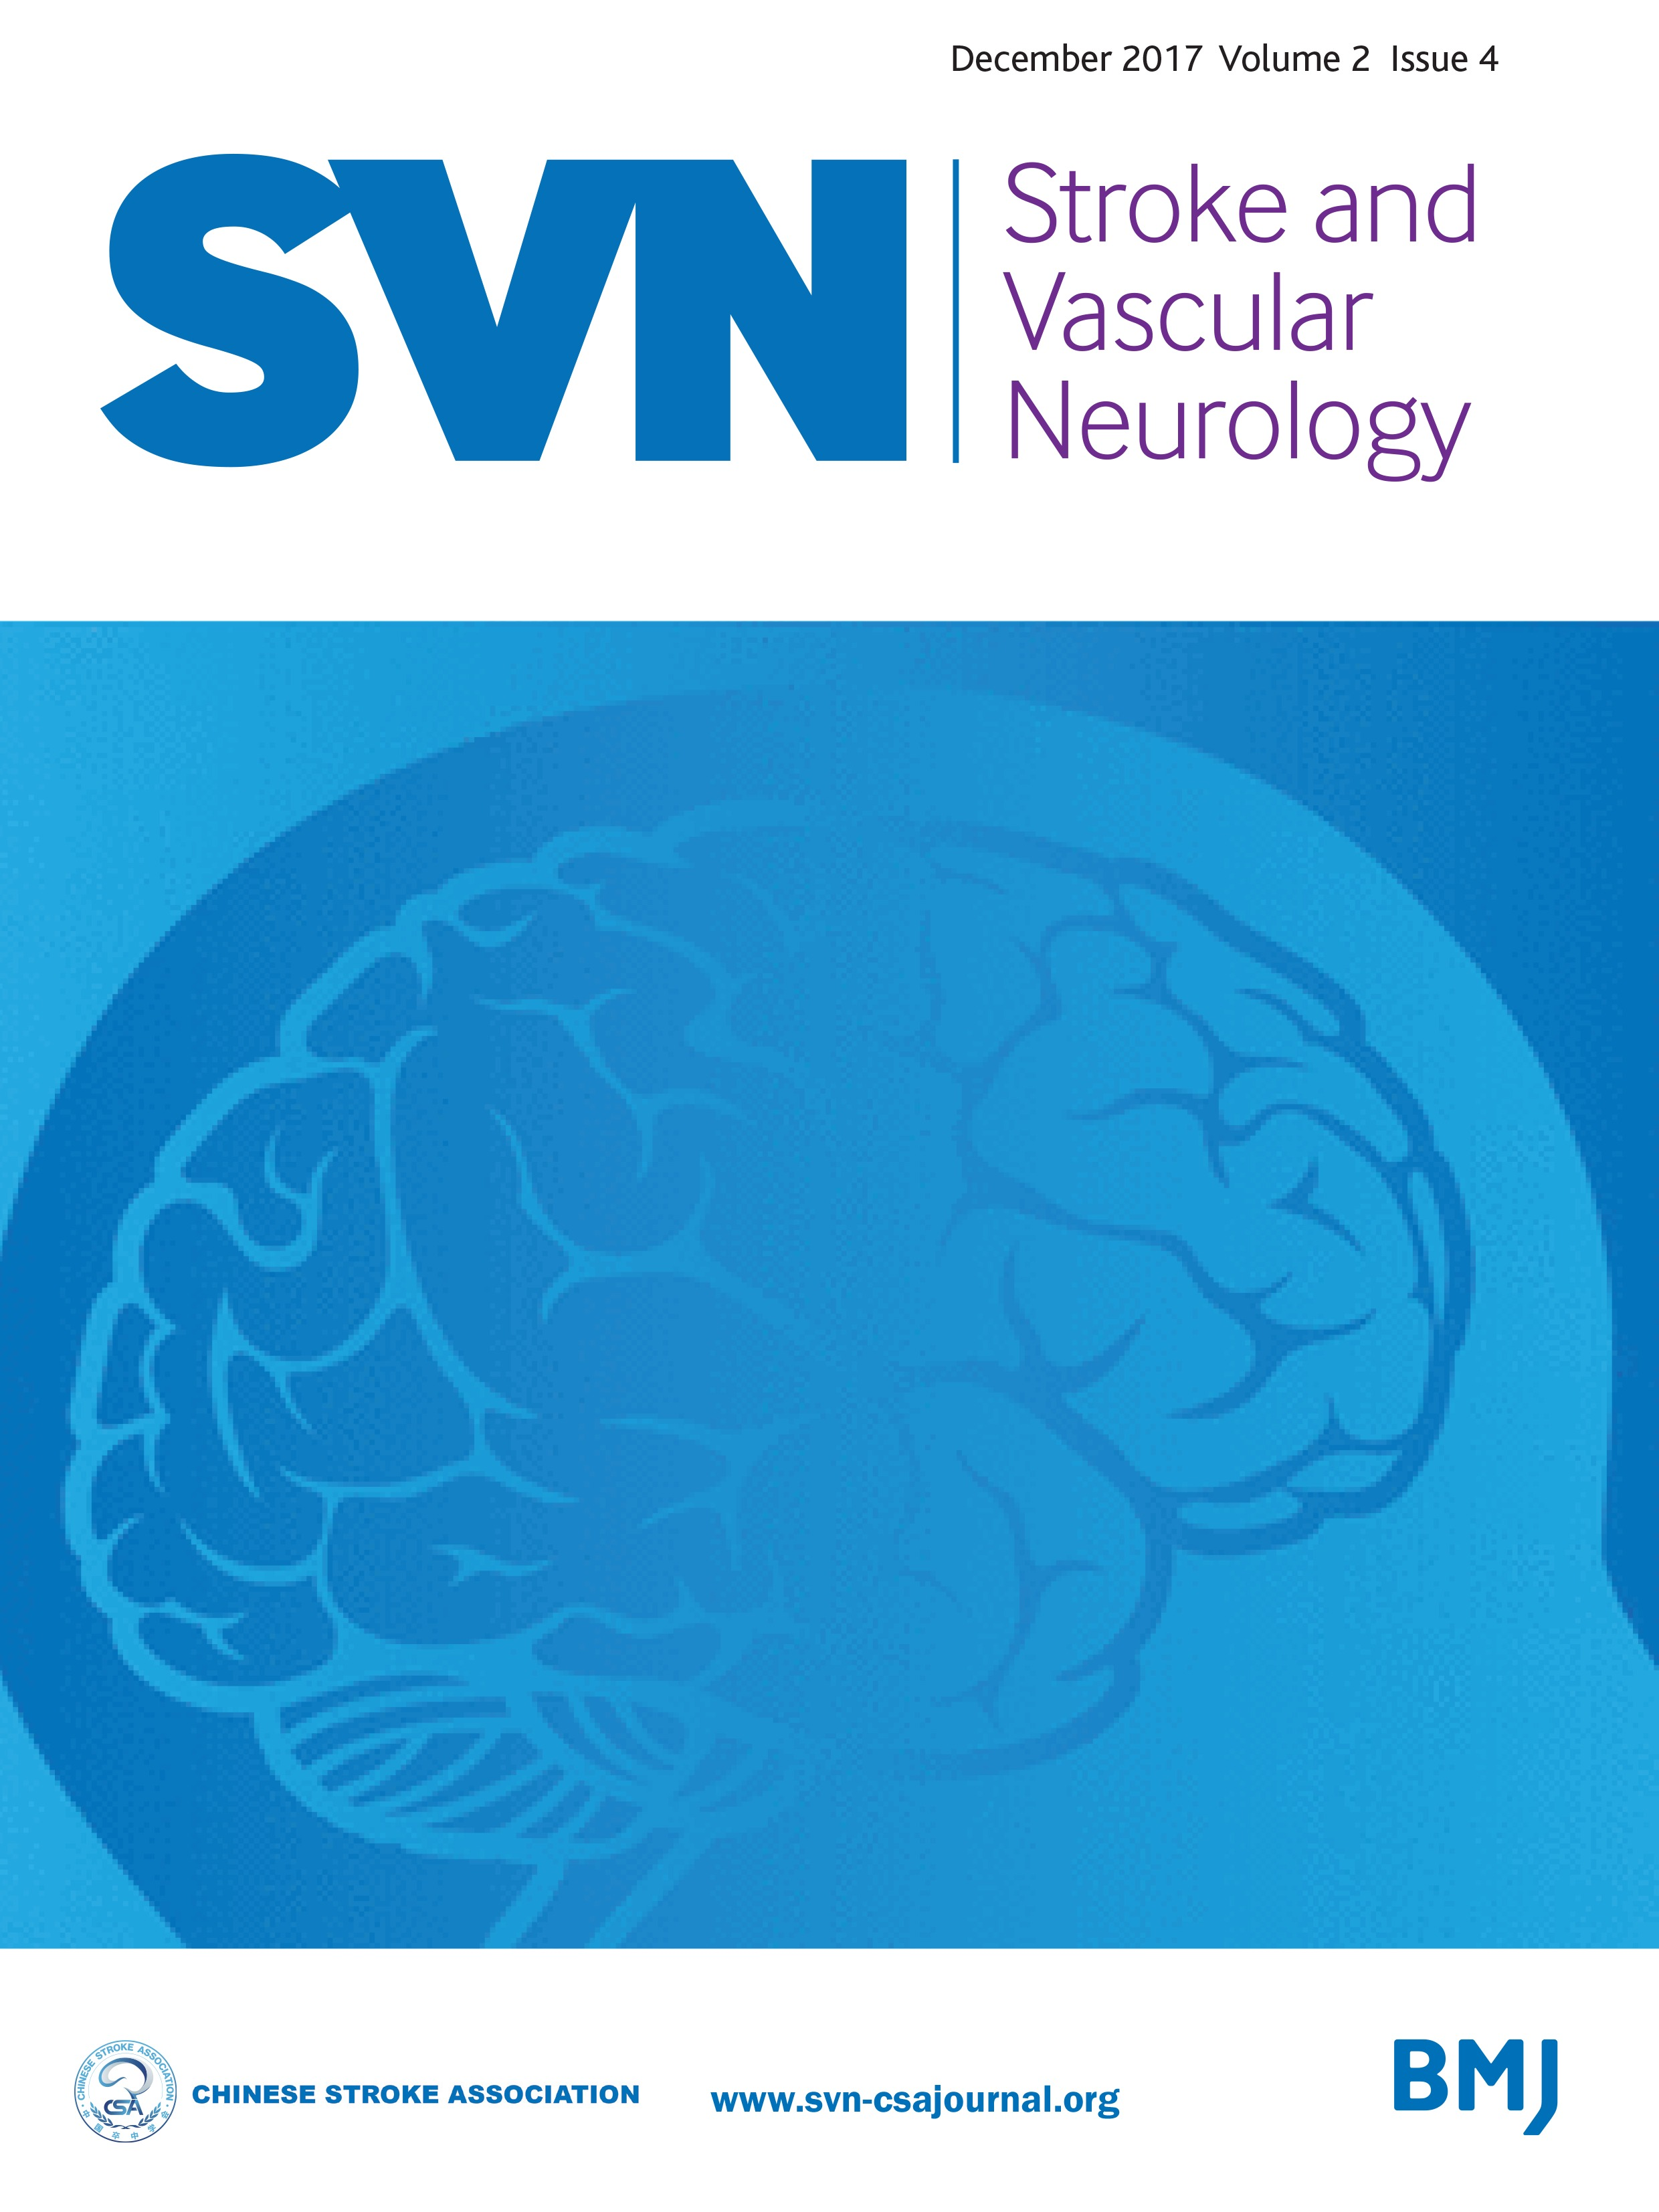 Eyes and stroke: the visual aspects of cerebrovascular disease ...